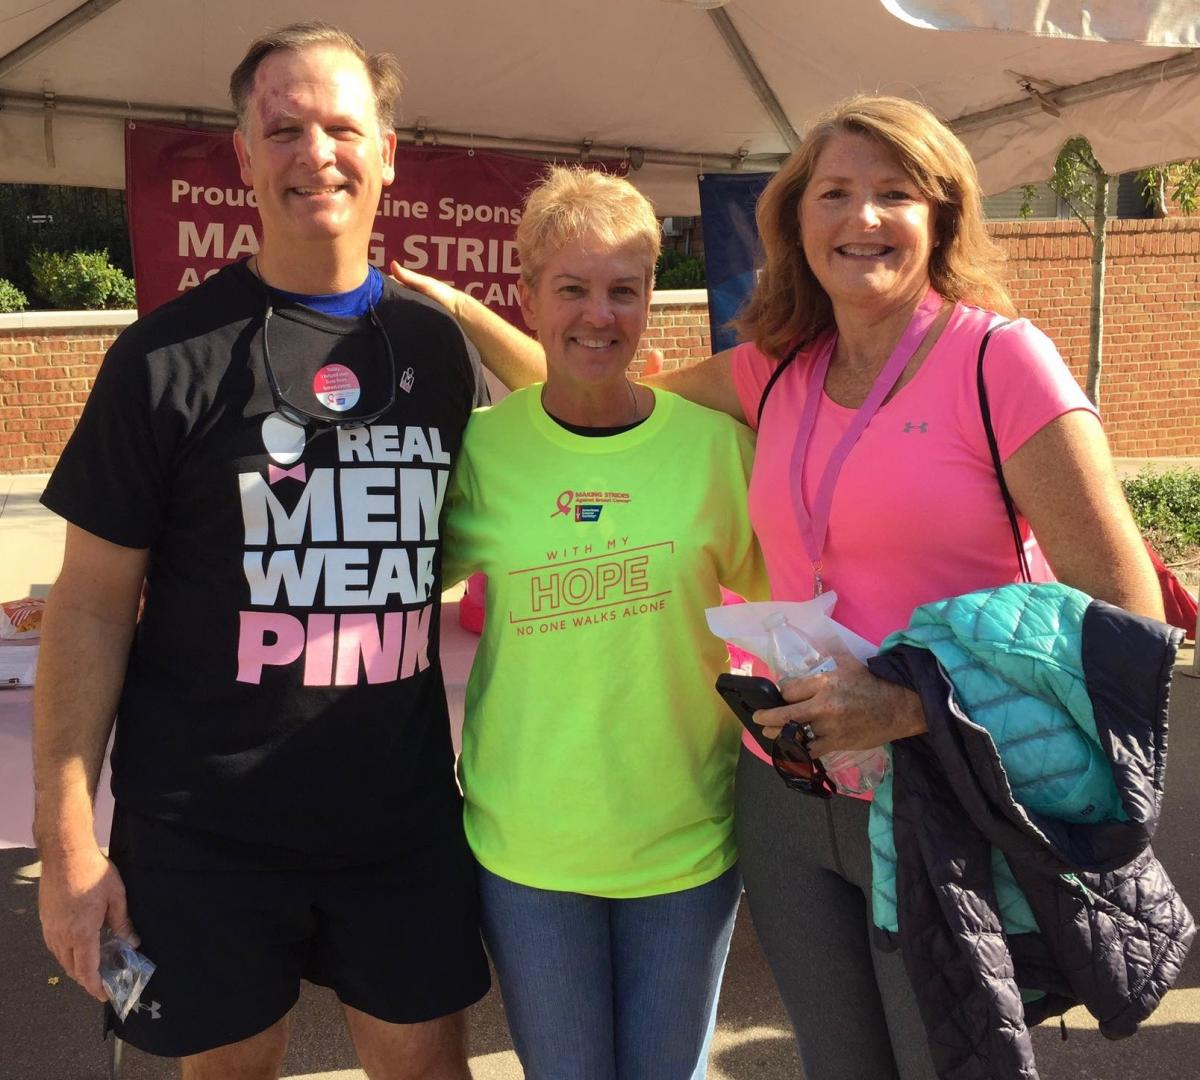 Angie's oncologist, P. Kelly Marcom, MD, joins Duke Cancer Institute colleagues at Making Strides 2016.